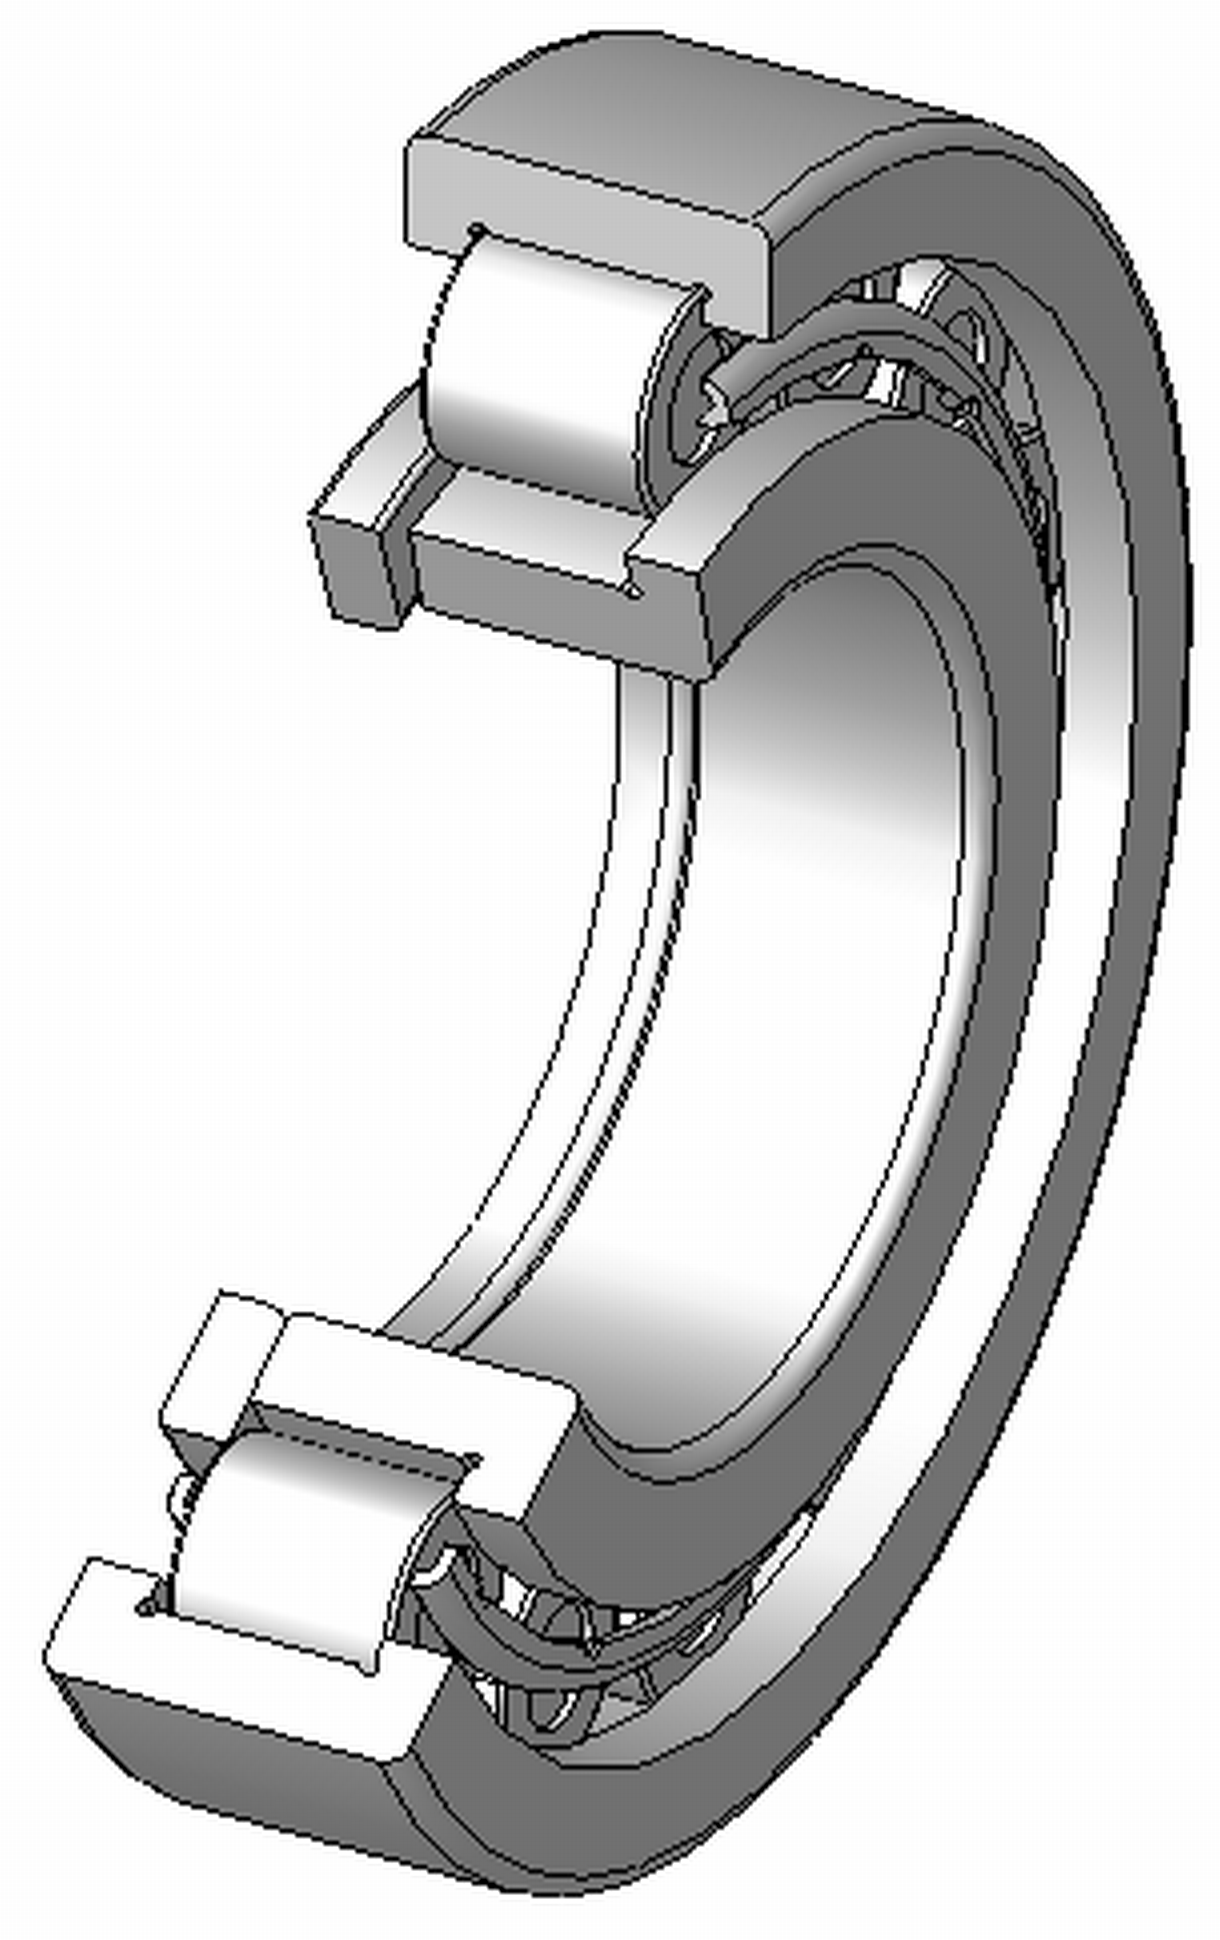 Description Cylindrical-roller-bearing din5412-t1 type-nup 120.png: https://commons.wikimedia.org/wiki/File:Cylindrical-roller-bearing_din5412-t1_type-nup_120.png